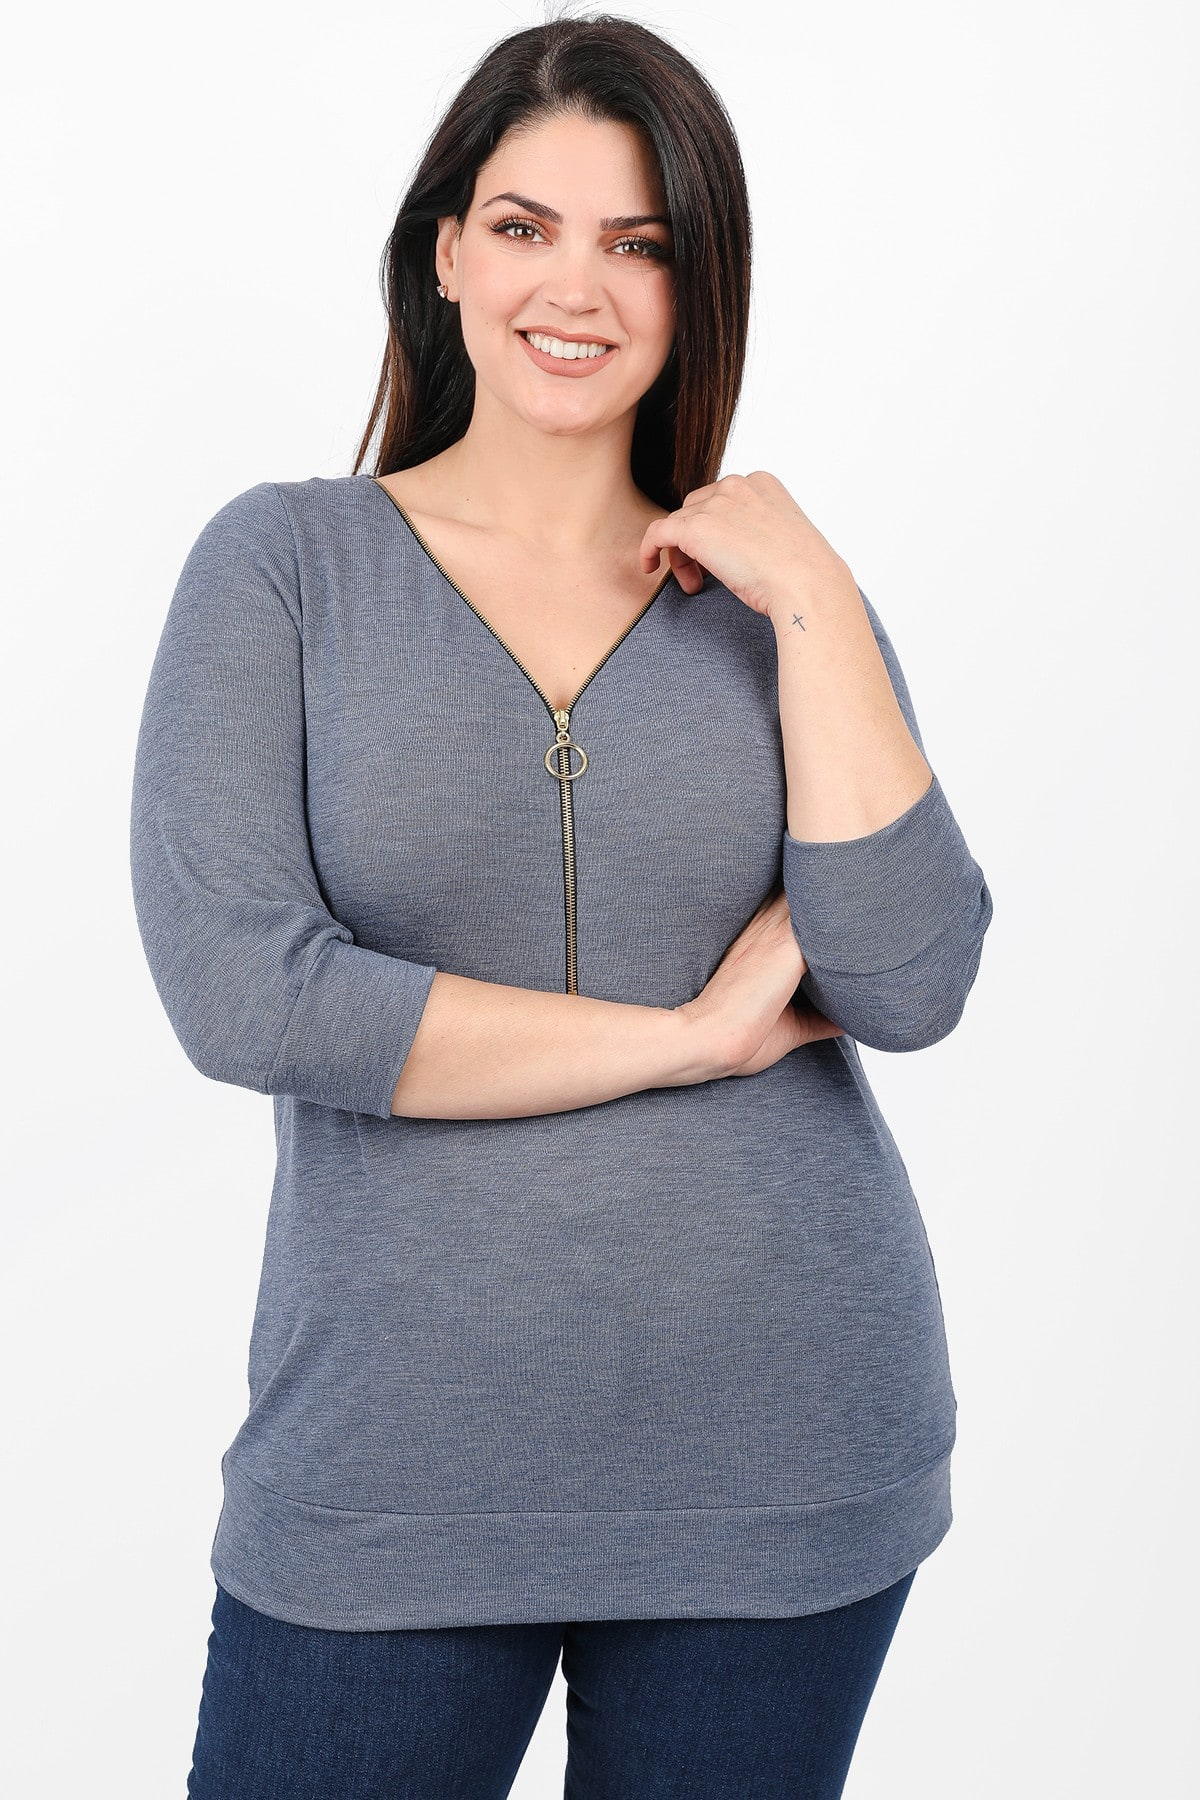 Knit blouse with zipper on the V